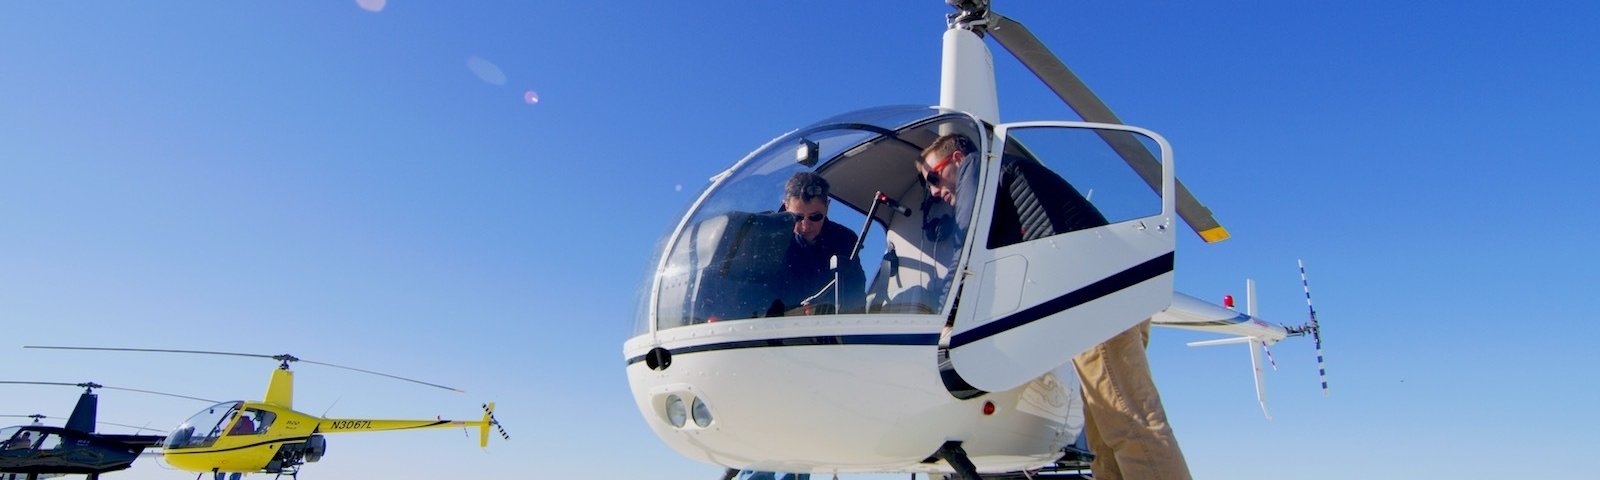 Student Helicopter Pilot